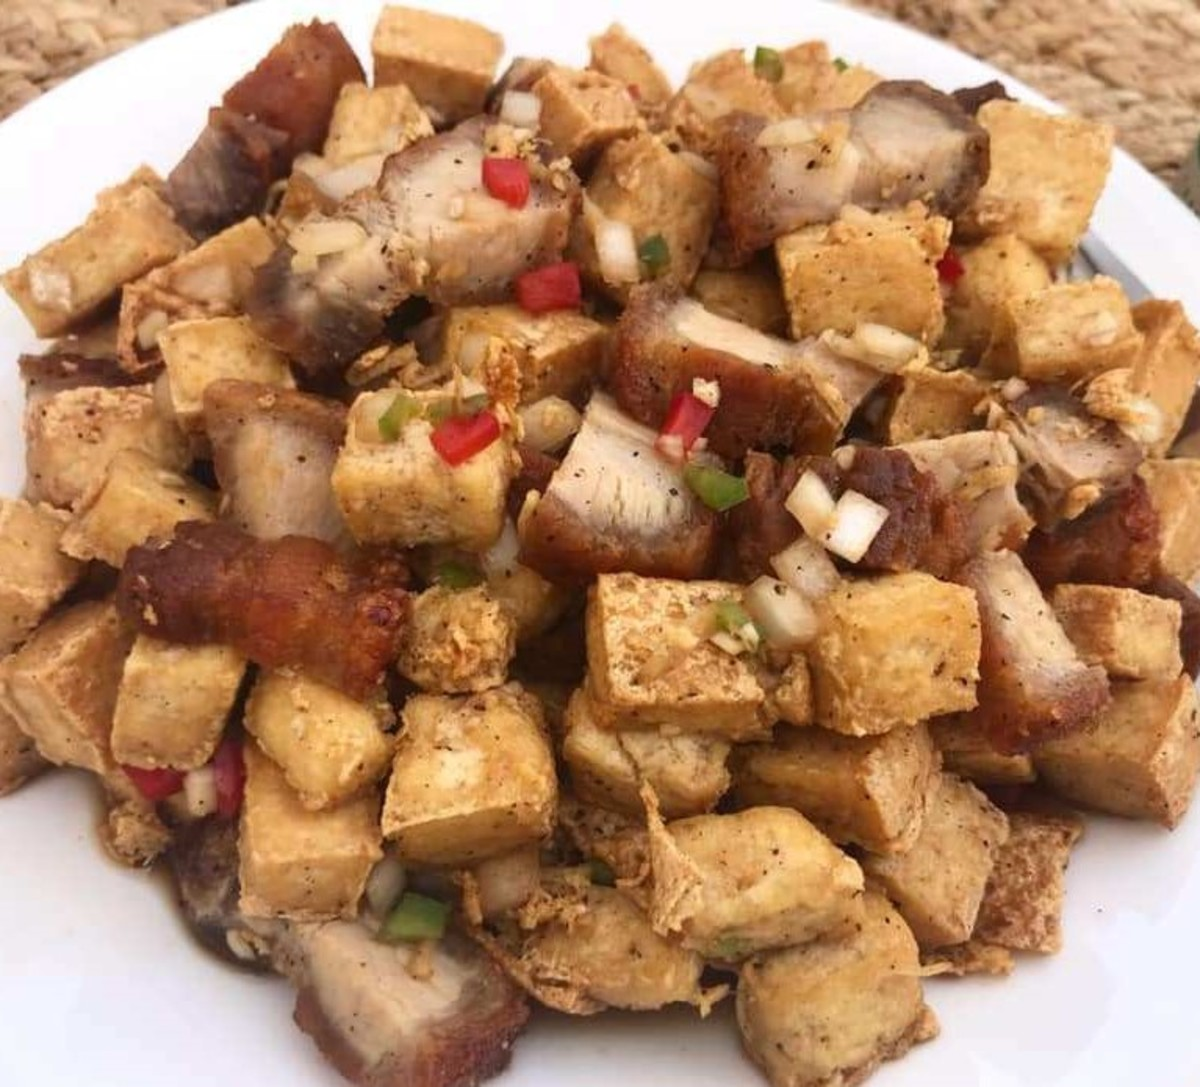 Pork and fried tofu with vinegar sauce